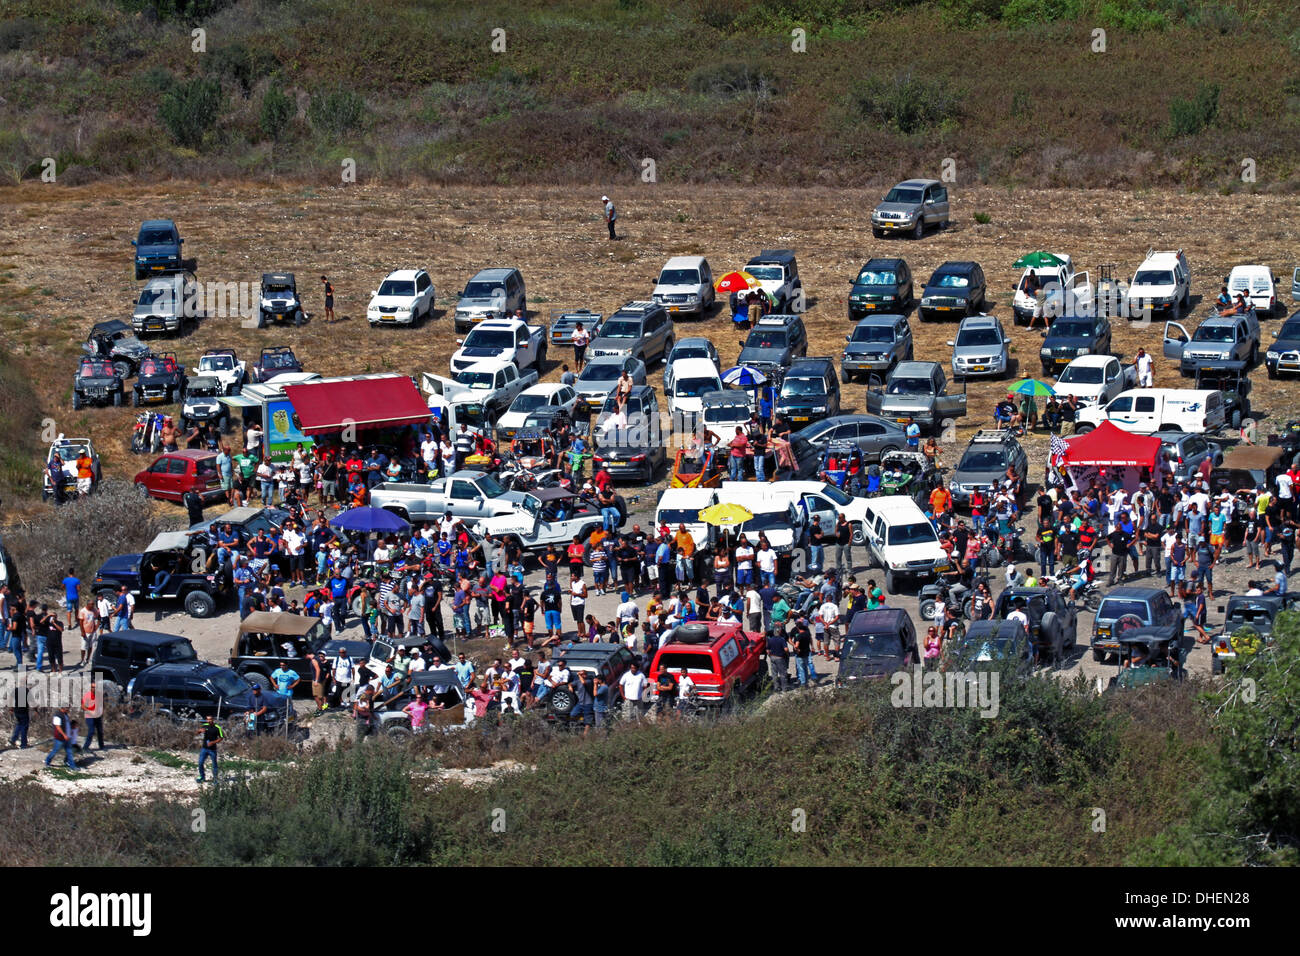 Cross country rally. A 4x4 event photographed in Israel - Stock Image